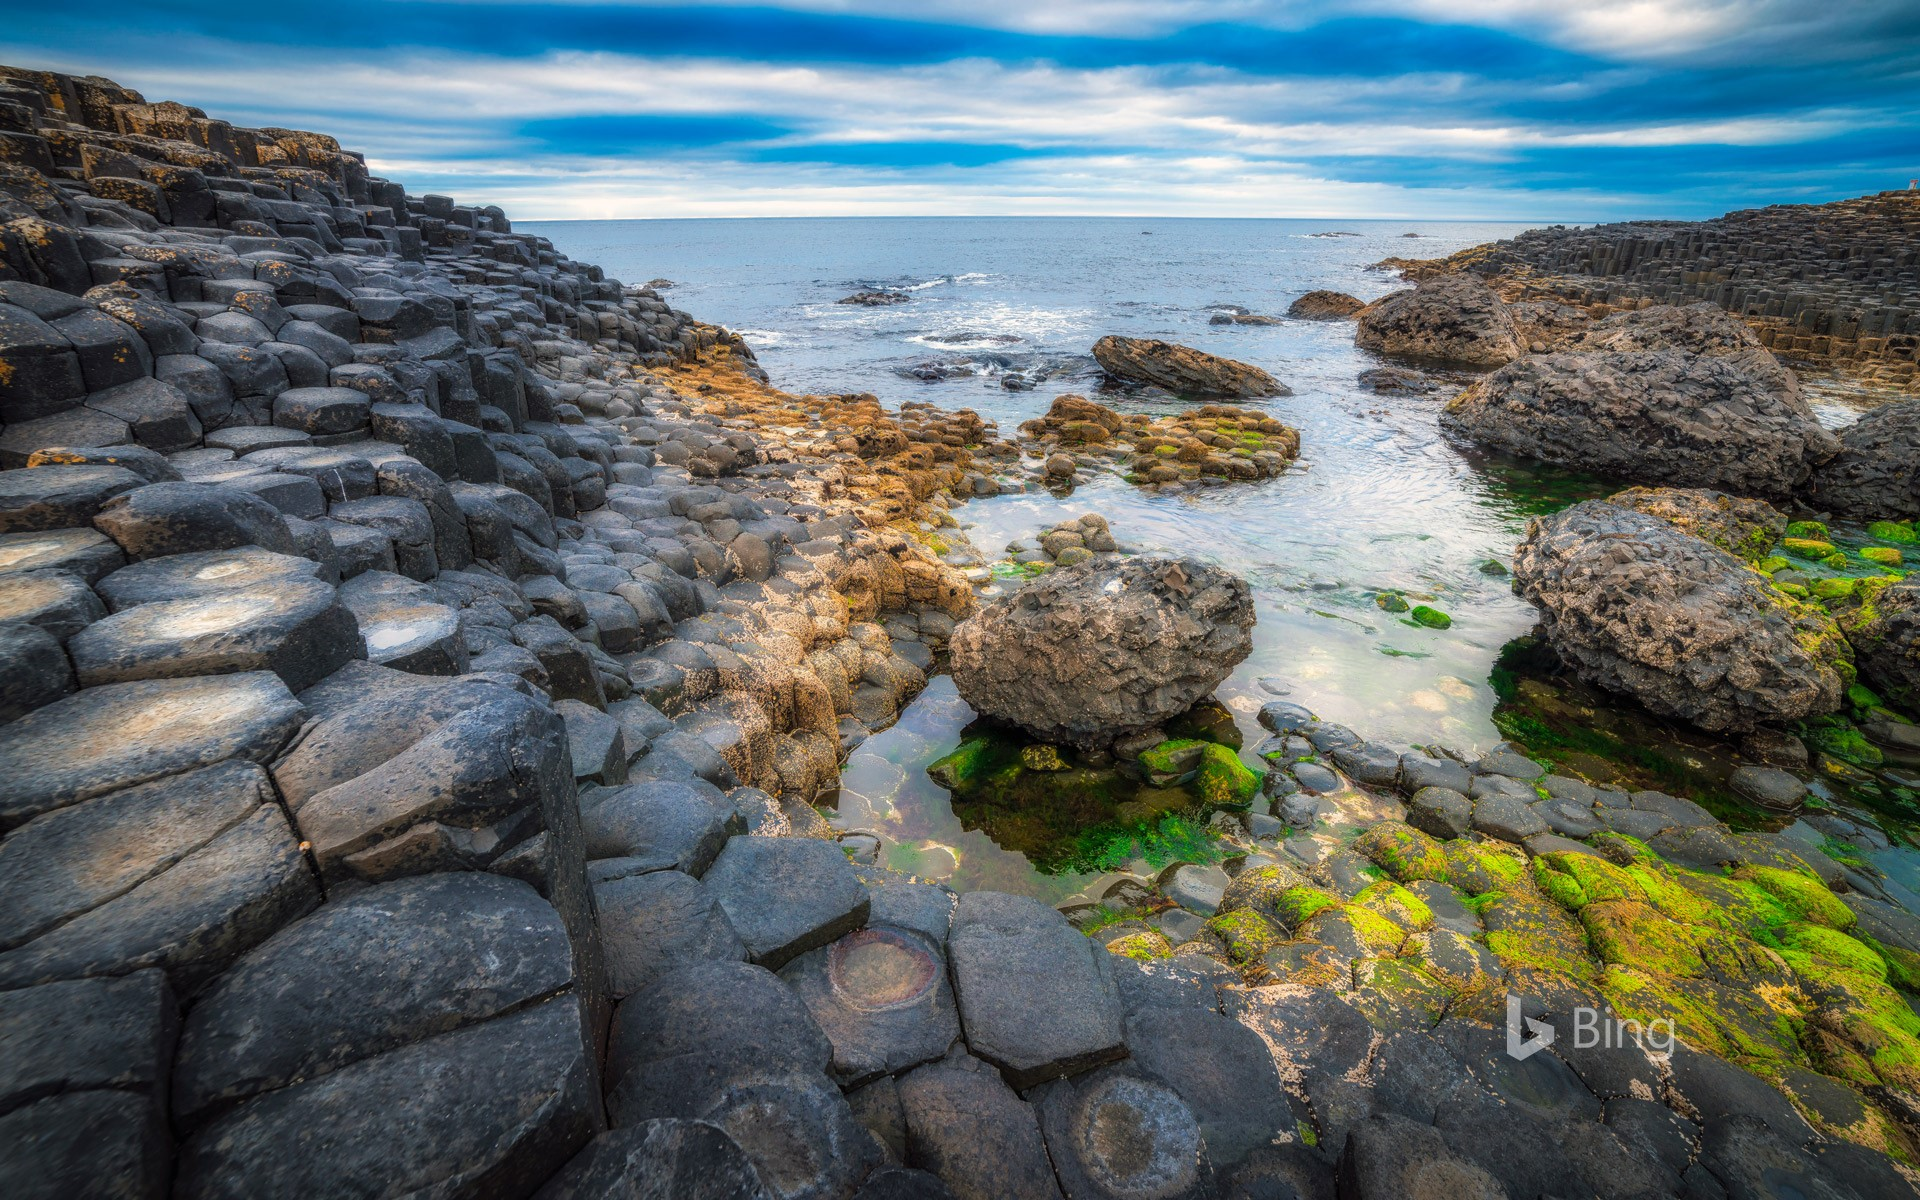 The Giant's Causeway, Bushmills, Northern Ireland, UK